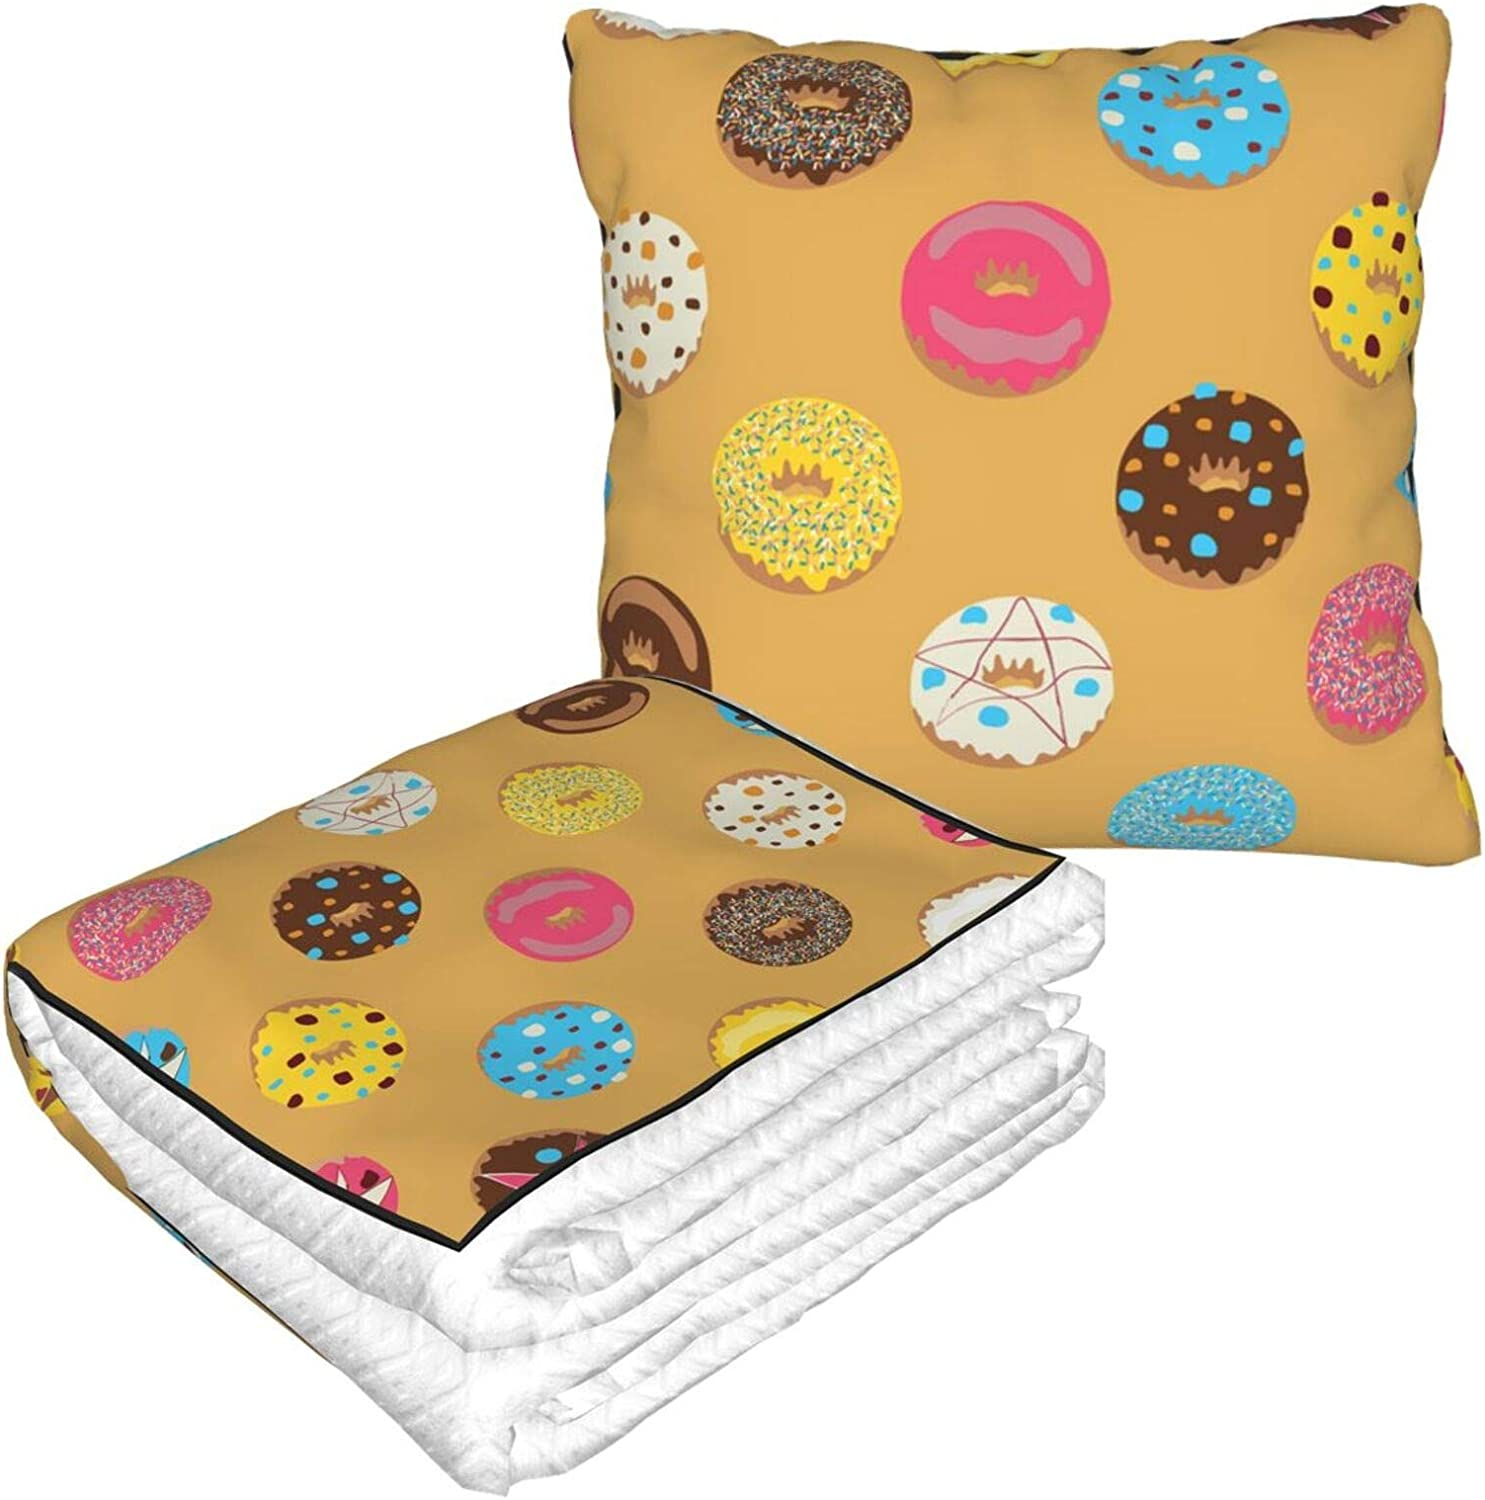 Chocolate Donuts Cartoon Cute Funny Food Travel Blanket and Pillow | Warm Soft Fleece 2-in-1 Combo Blanket for Airplane, Camping, Car Trips | Large Compact Blanket Set